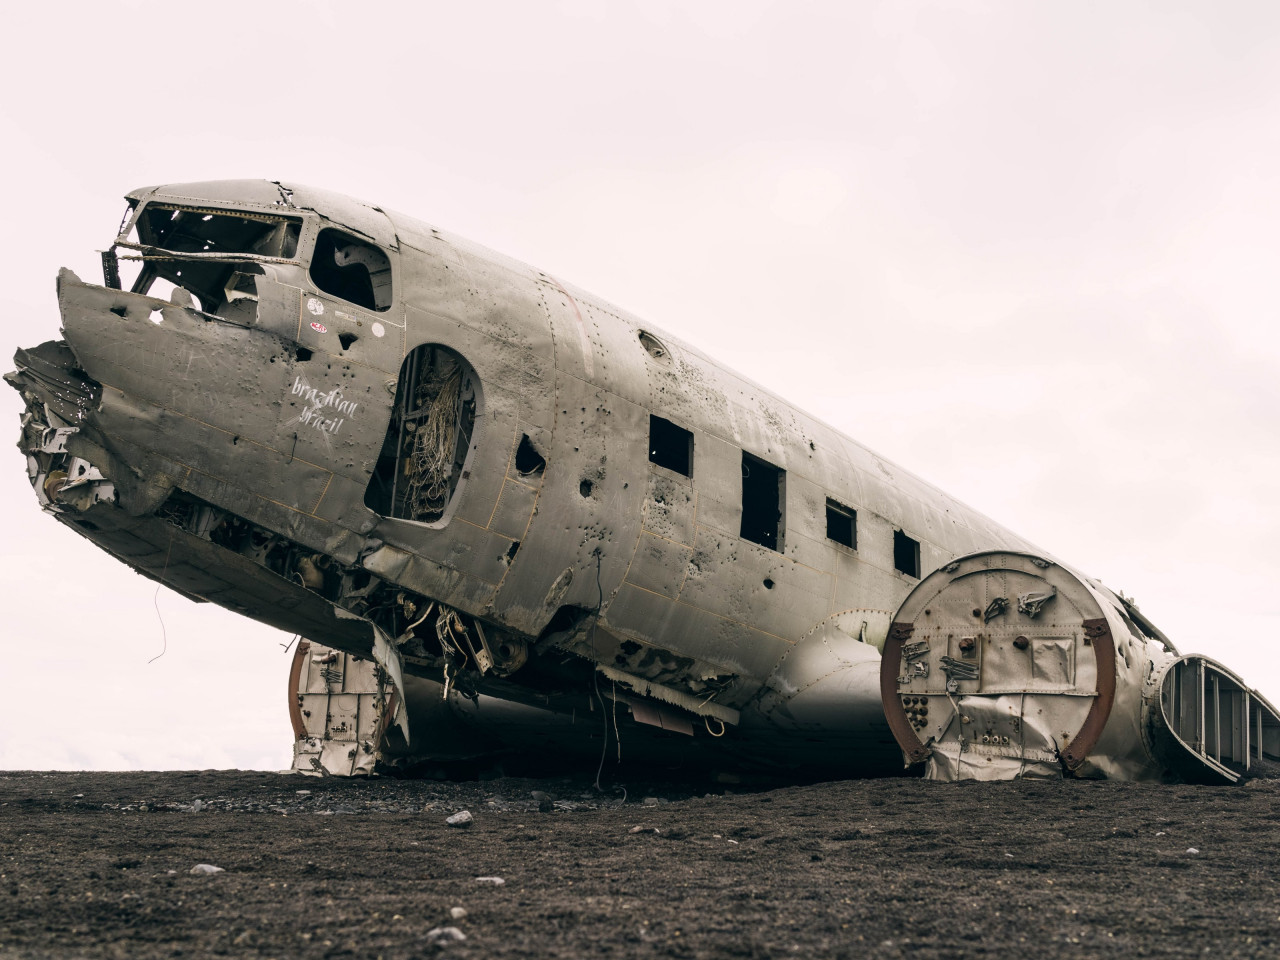 Wrecked airplane wallpaper 1280x960